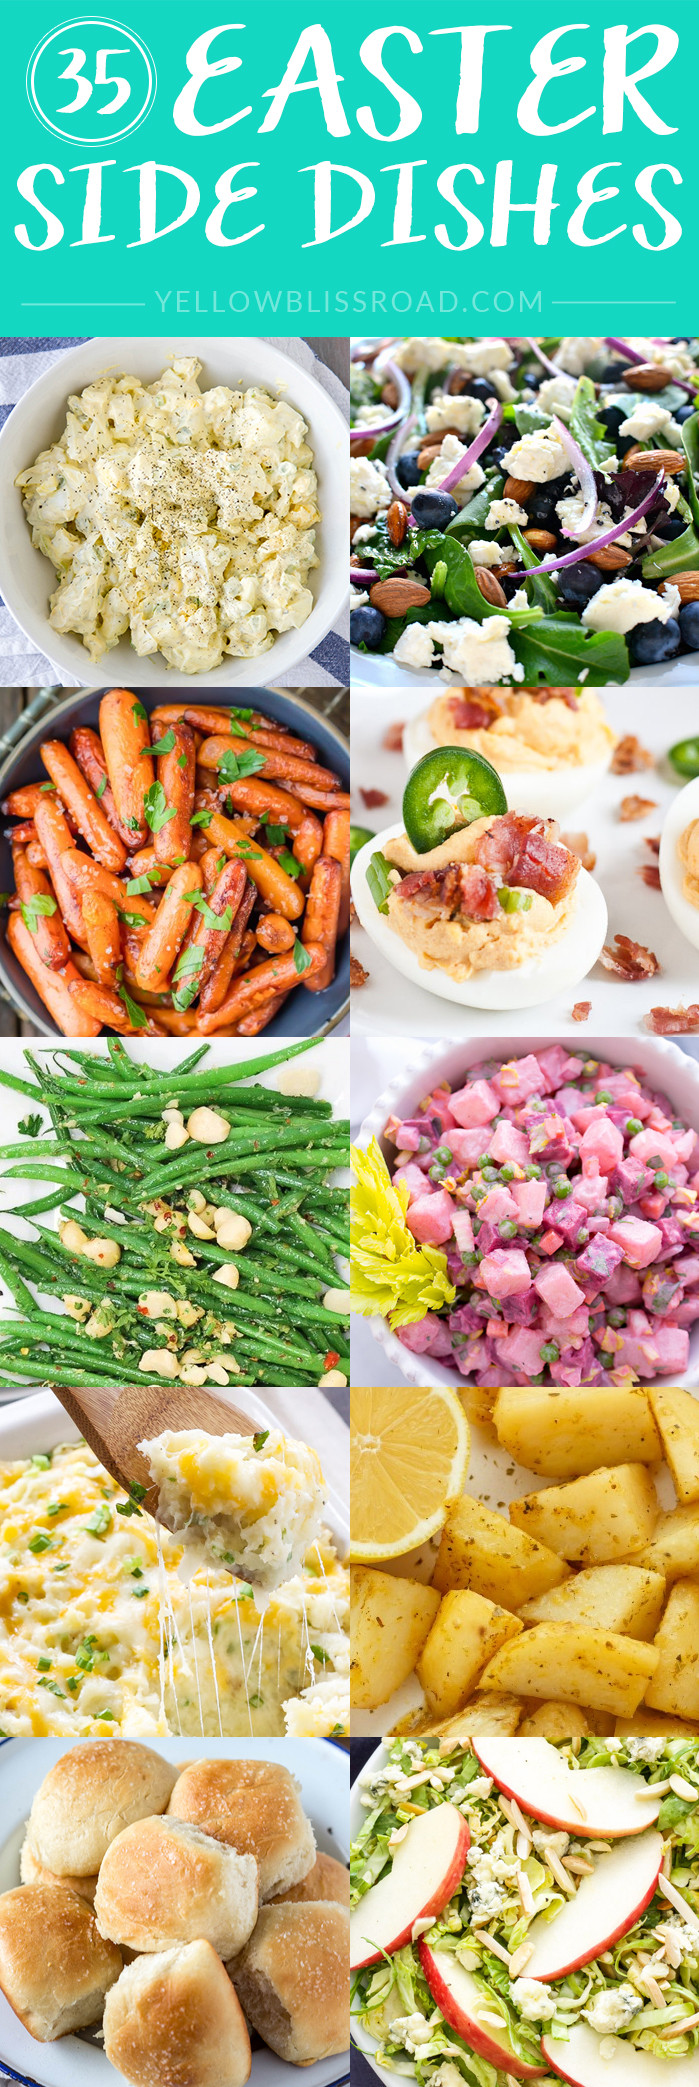 Side Dishes For Easter  Easter Side Dishes More than 50 of the Best Sides for